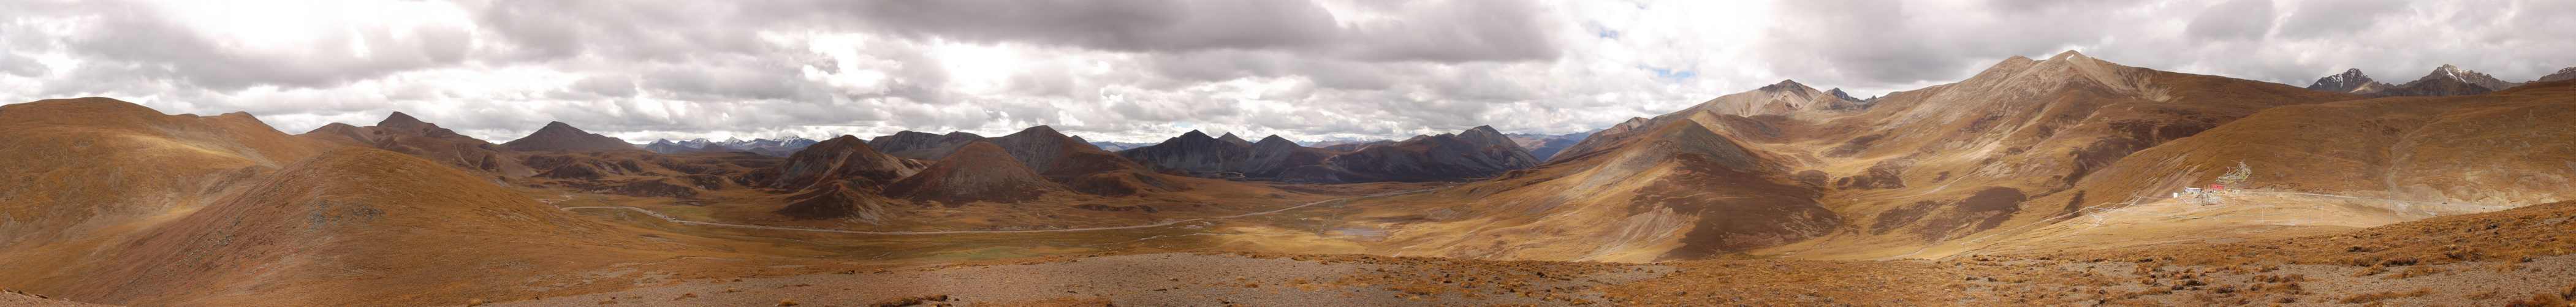 China, Tibet, Rutok, Mi La, 4865m